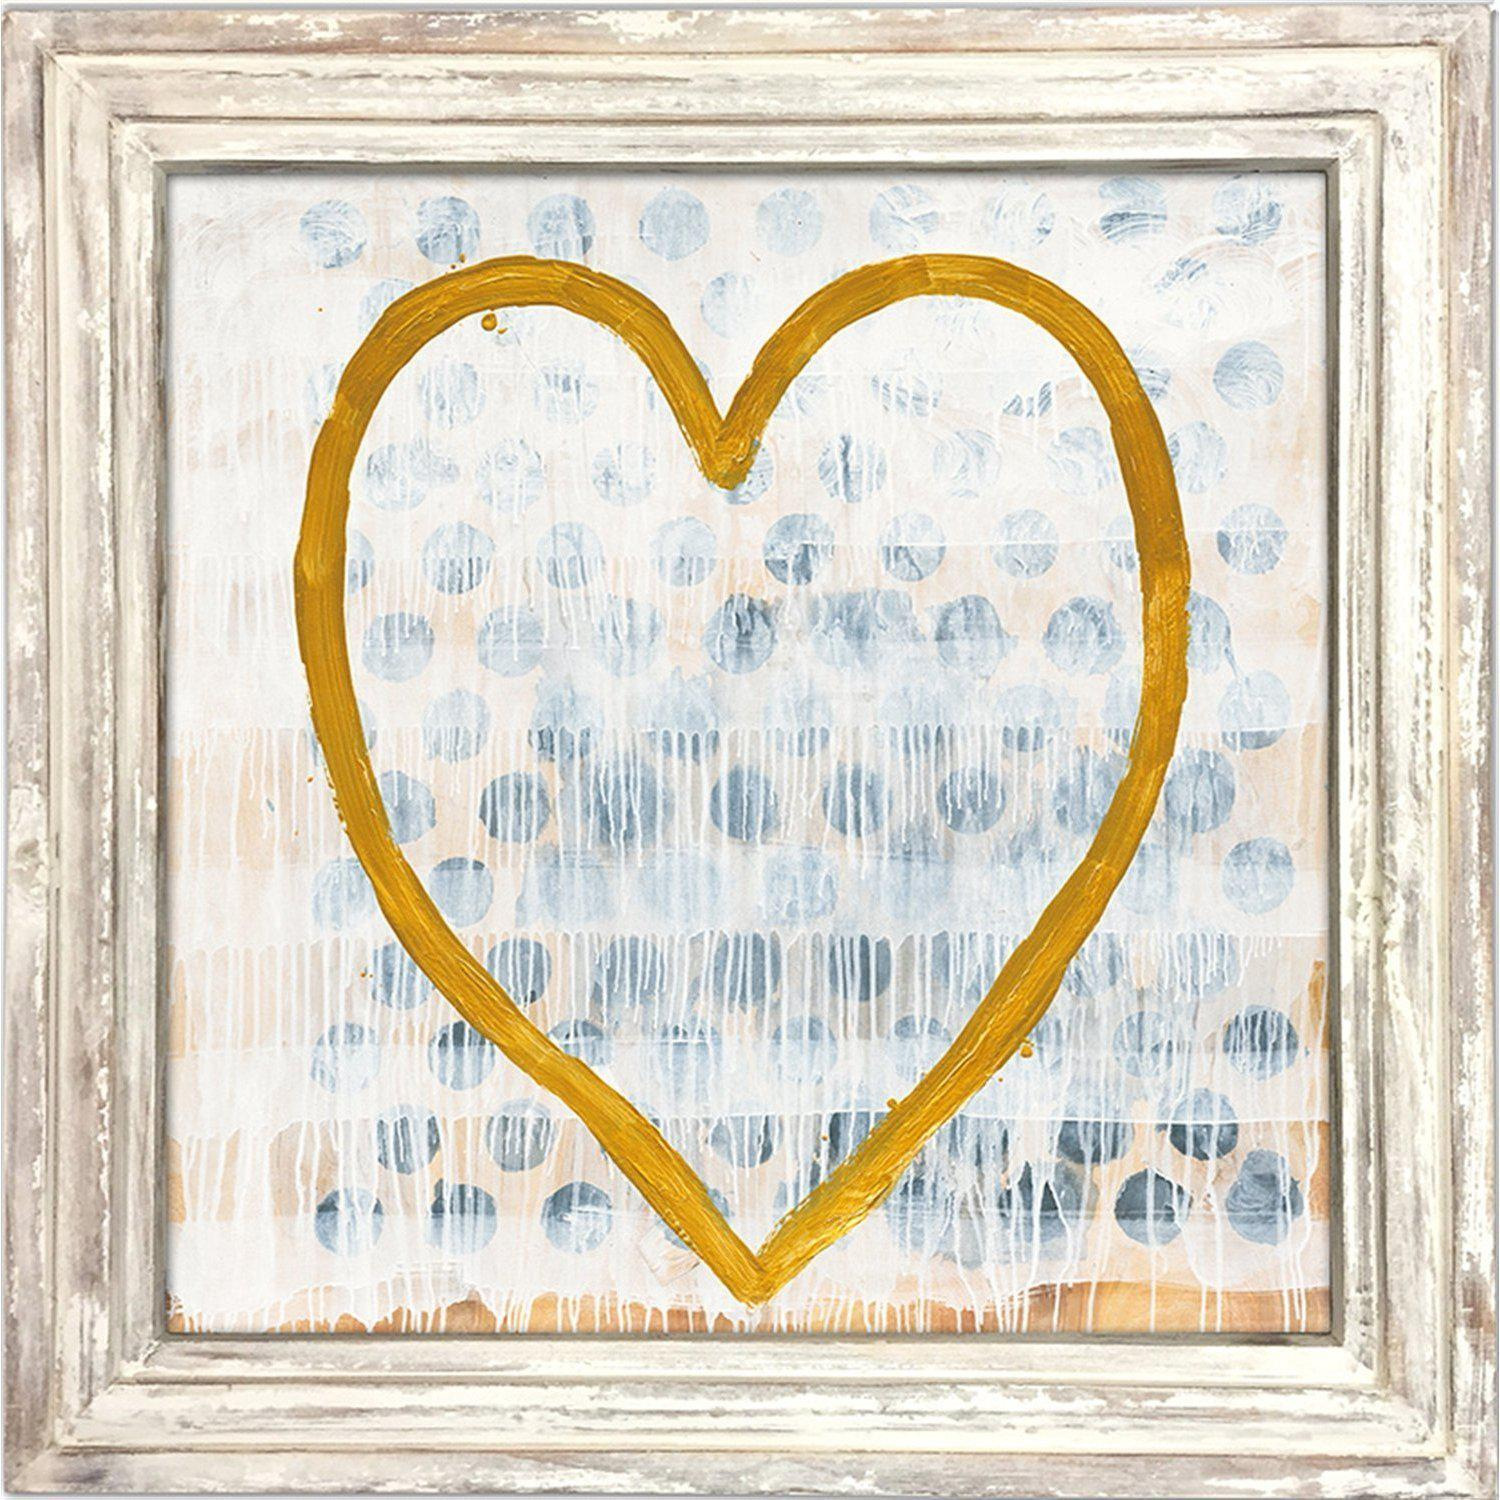 Sugarboo Designs Heart Of Gold Art Print-Brands-36x36-White Wash Frame-$25 Rush Order Fee-A Cottage in the City